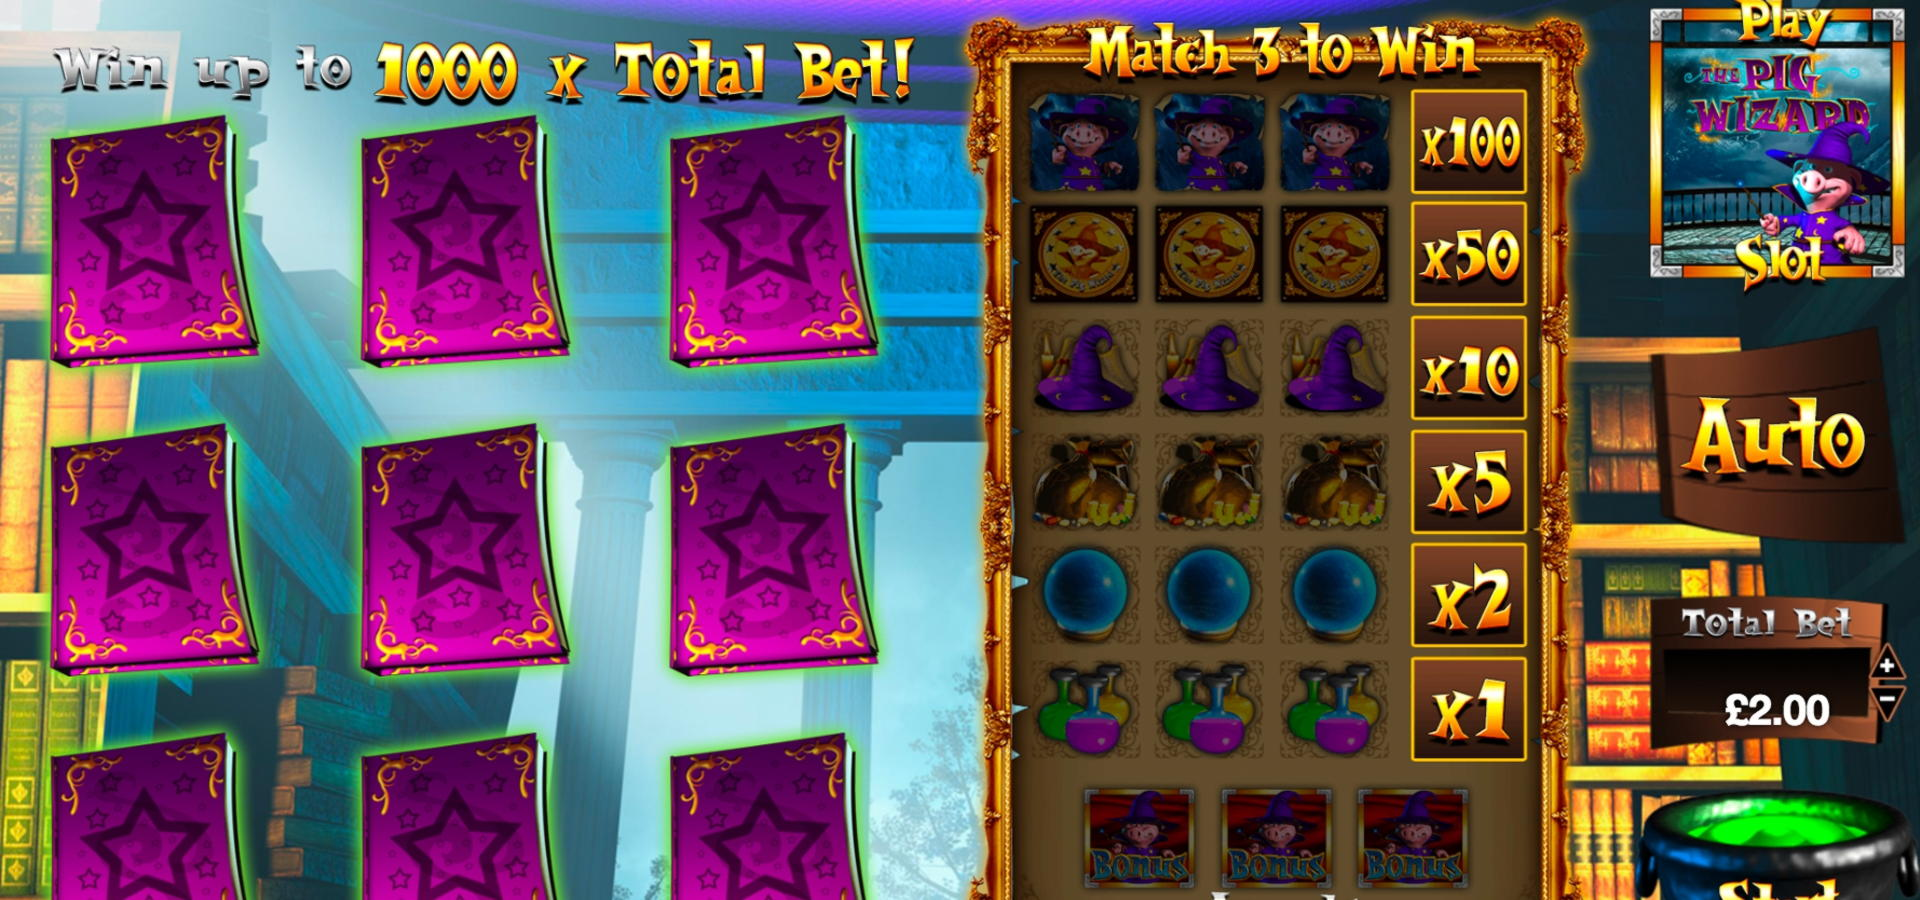 180 Trial Spins am Wins Park